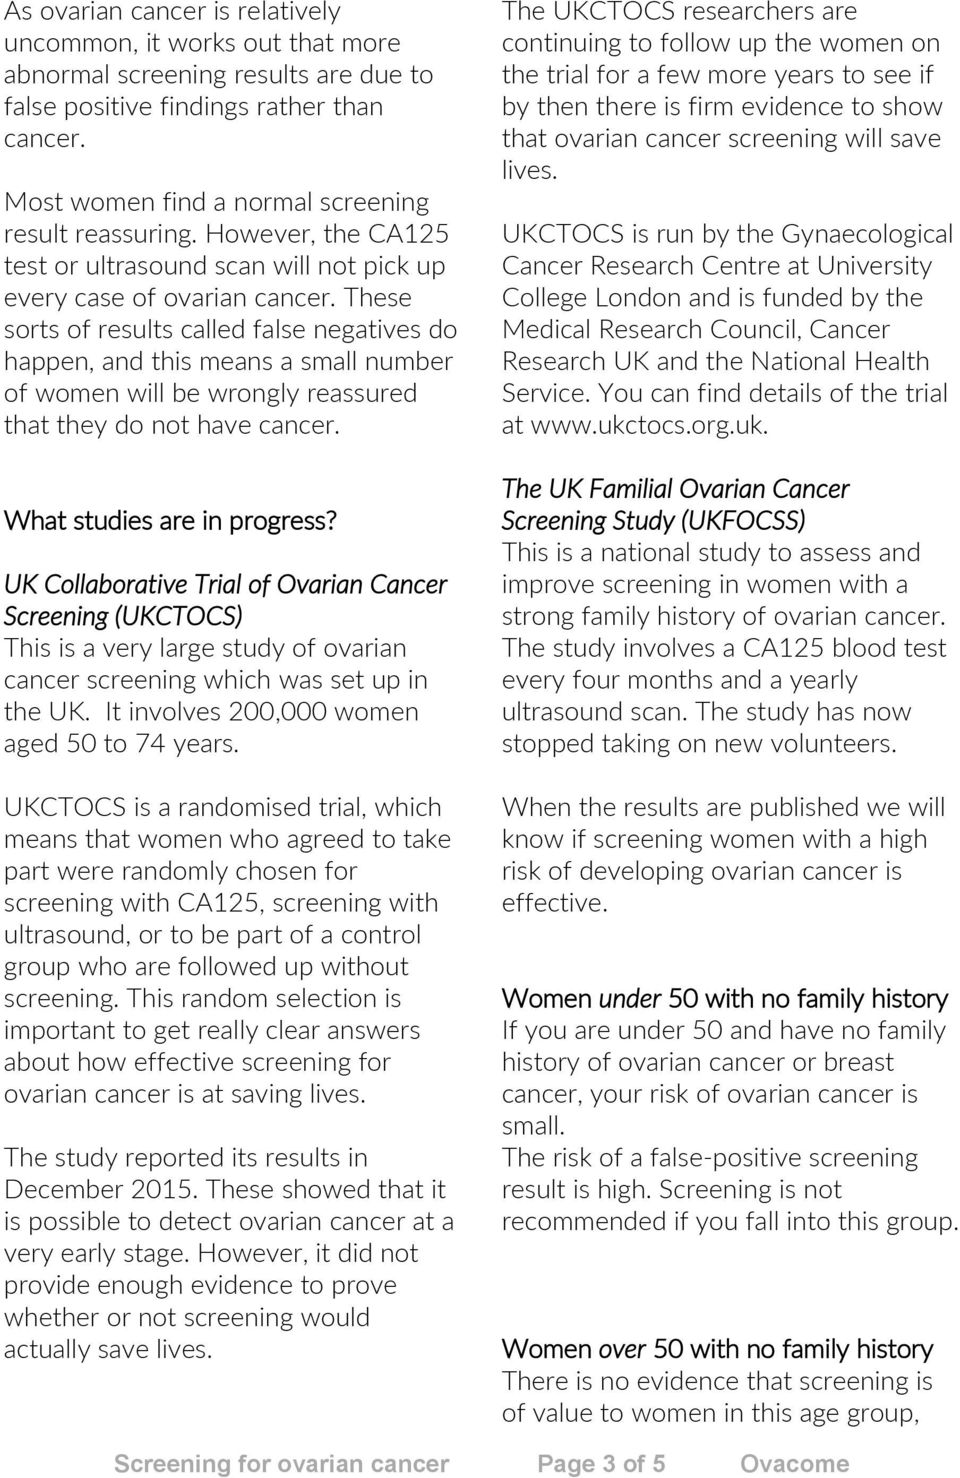 Screening For Ovarian Cancer Page 1 Of 5 Ovacome Pdf Free Download